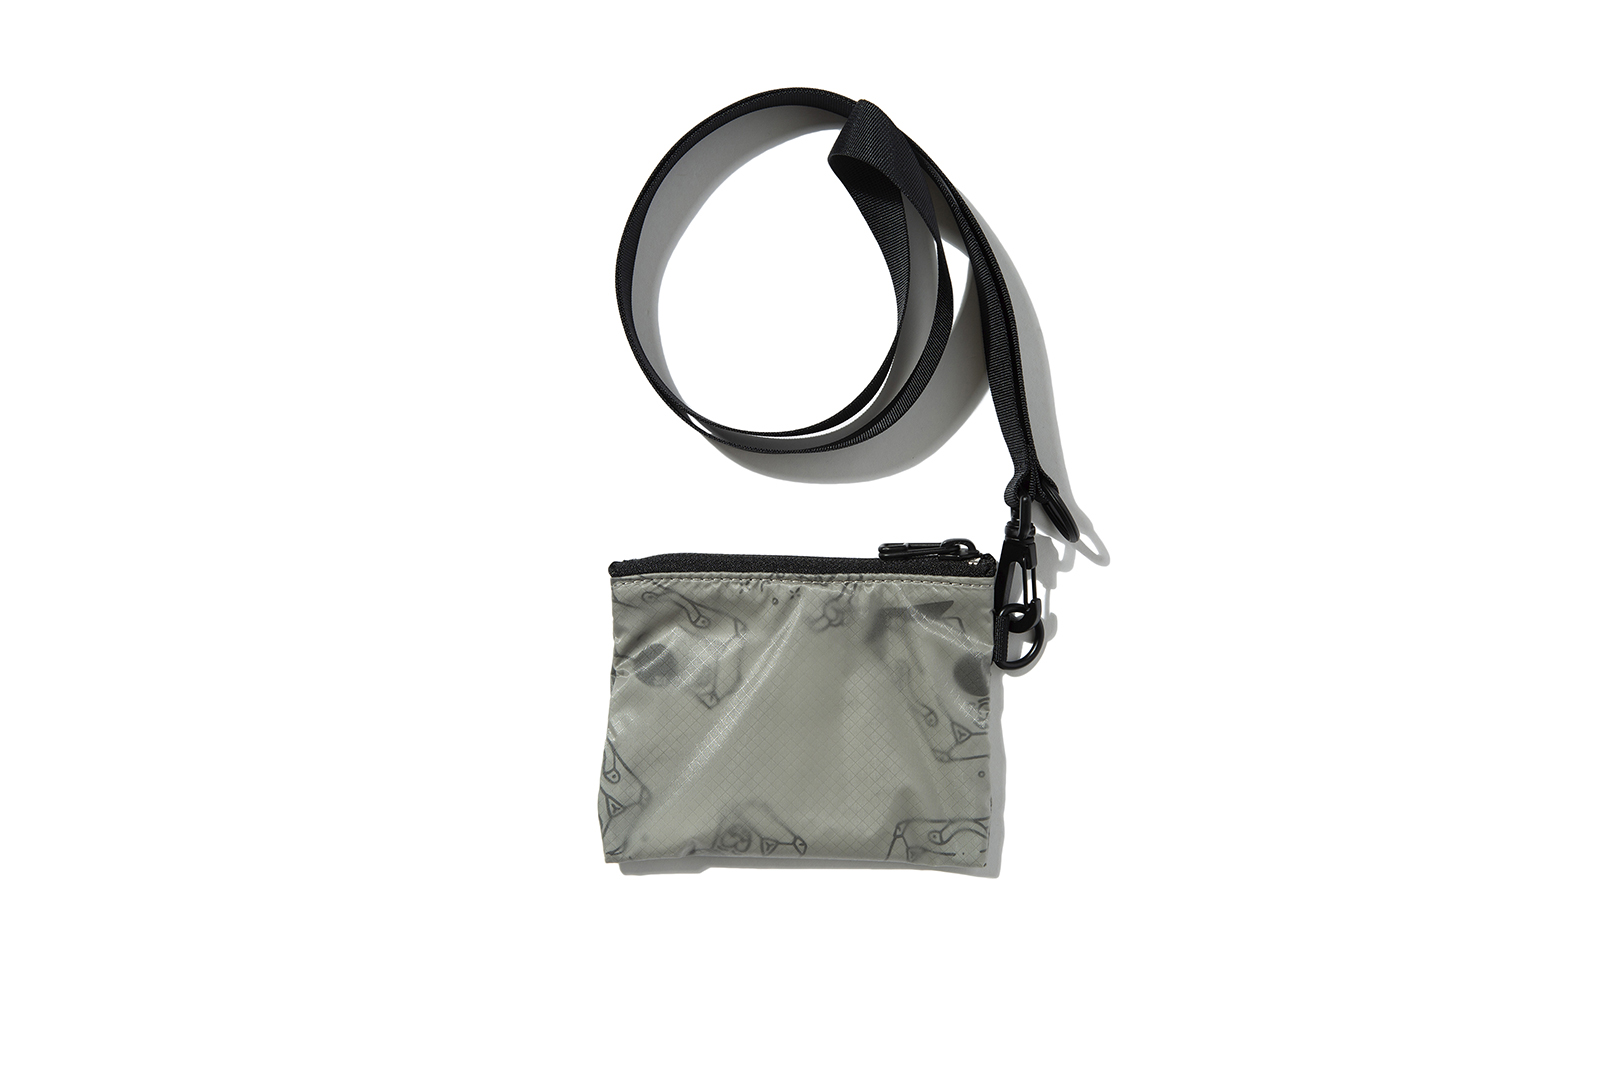 pouch-and-strap_p1